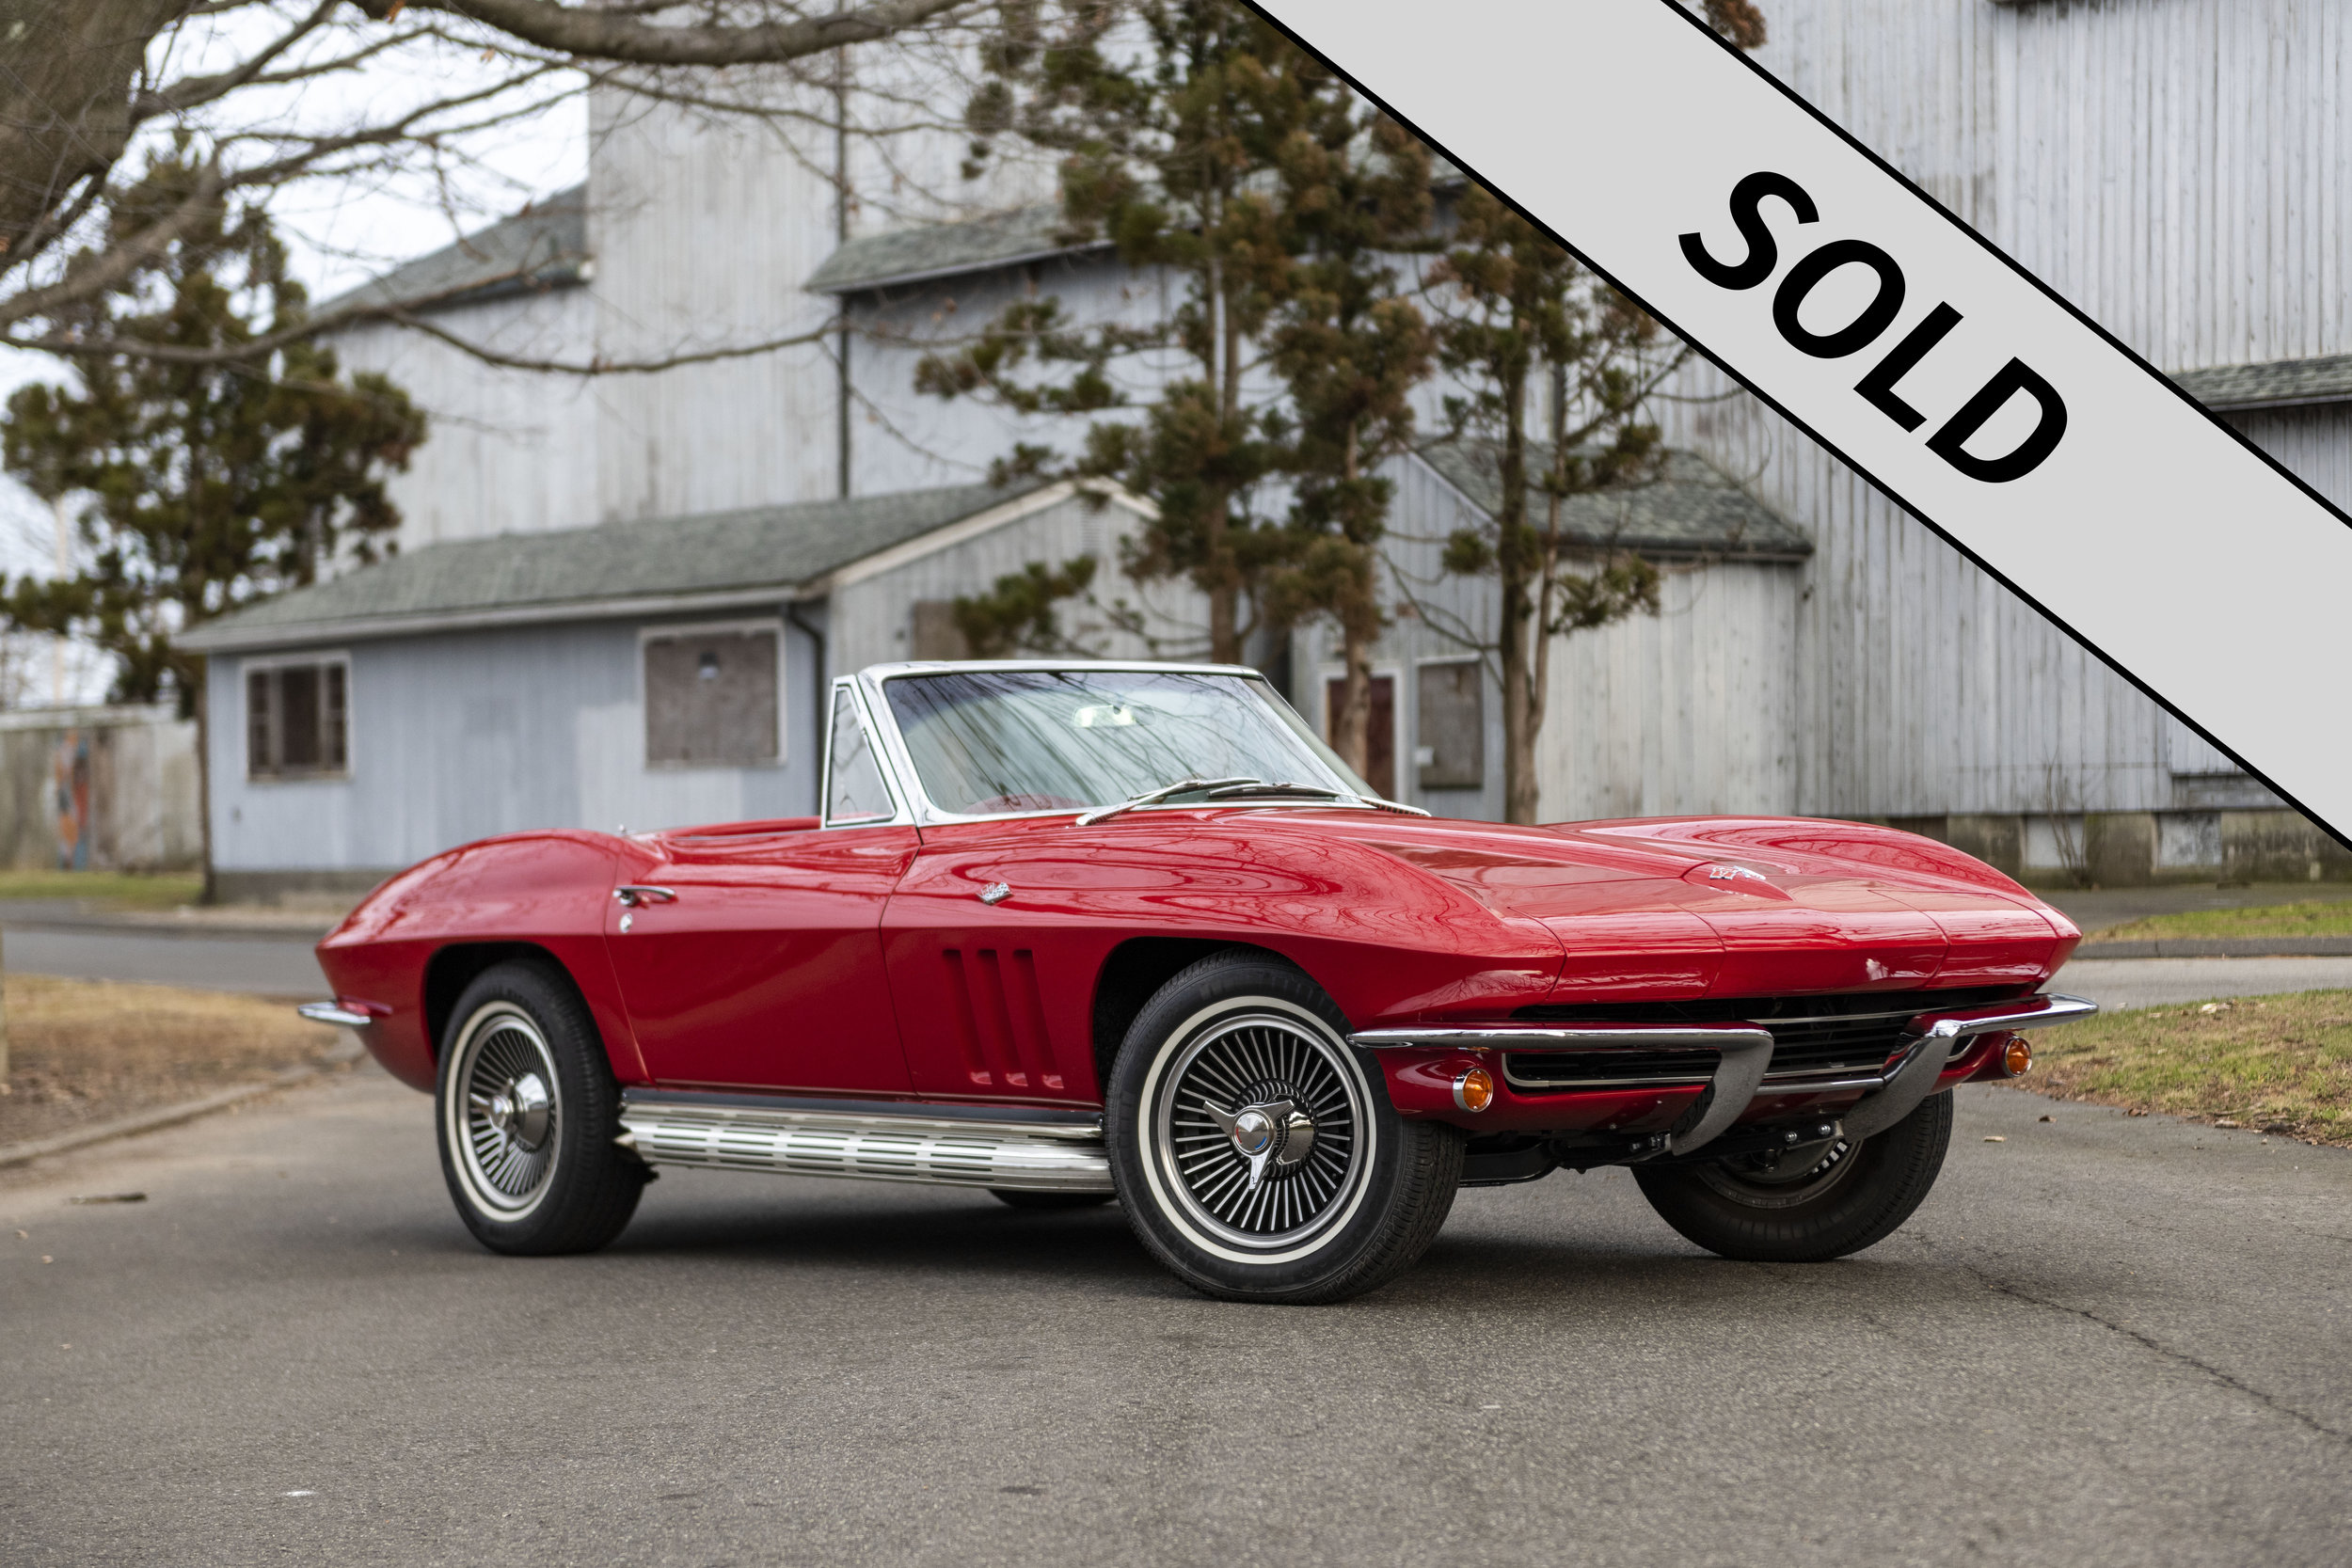 1965 Chevrolet Corvette (Perry) (1) SOLD.jpg